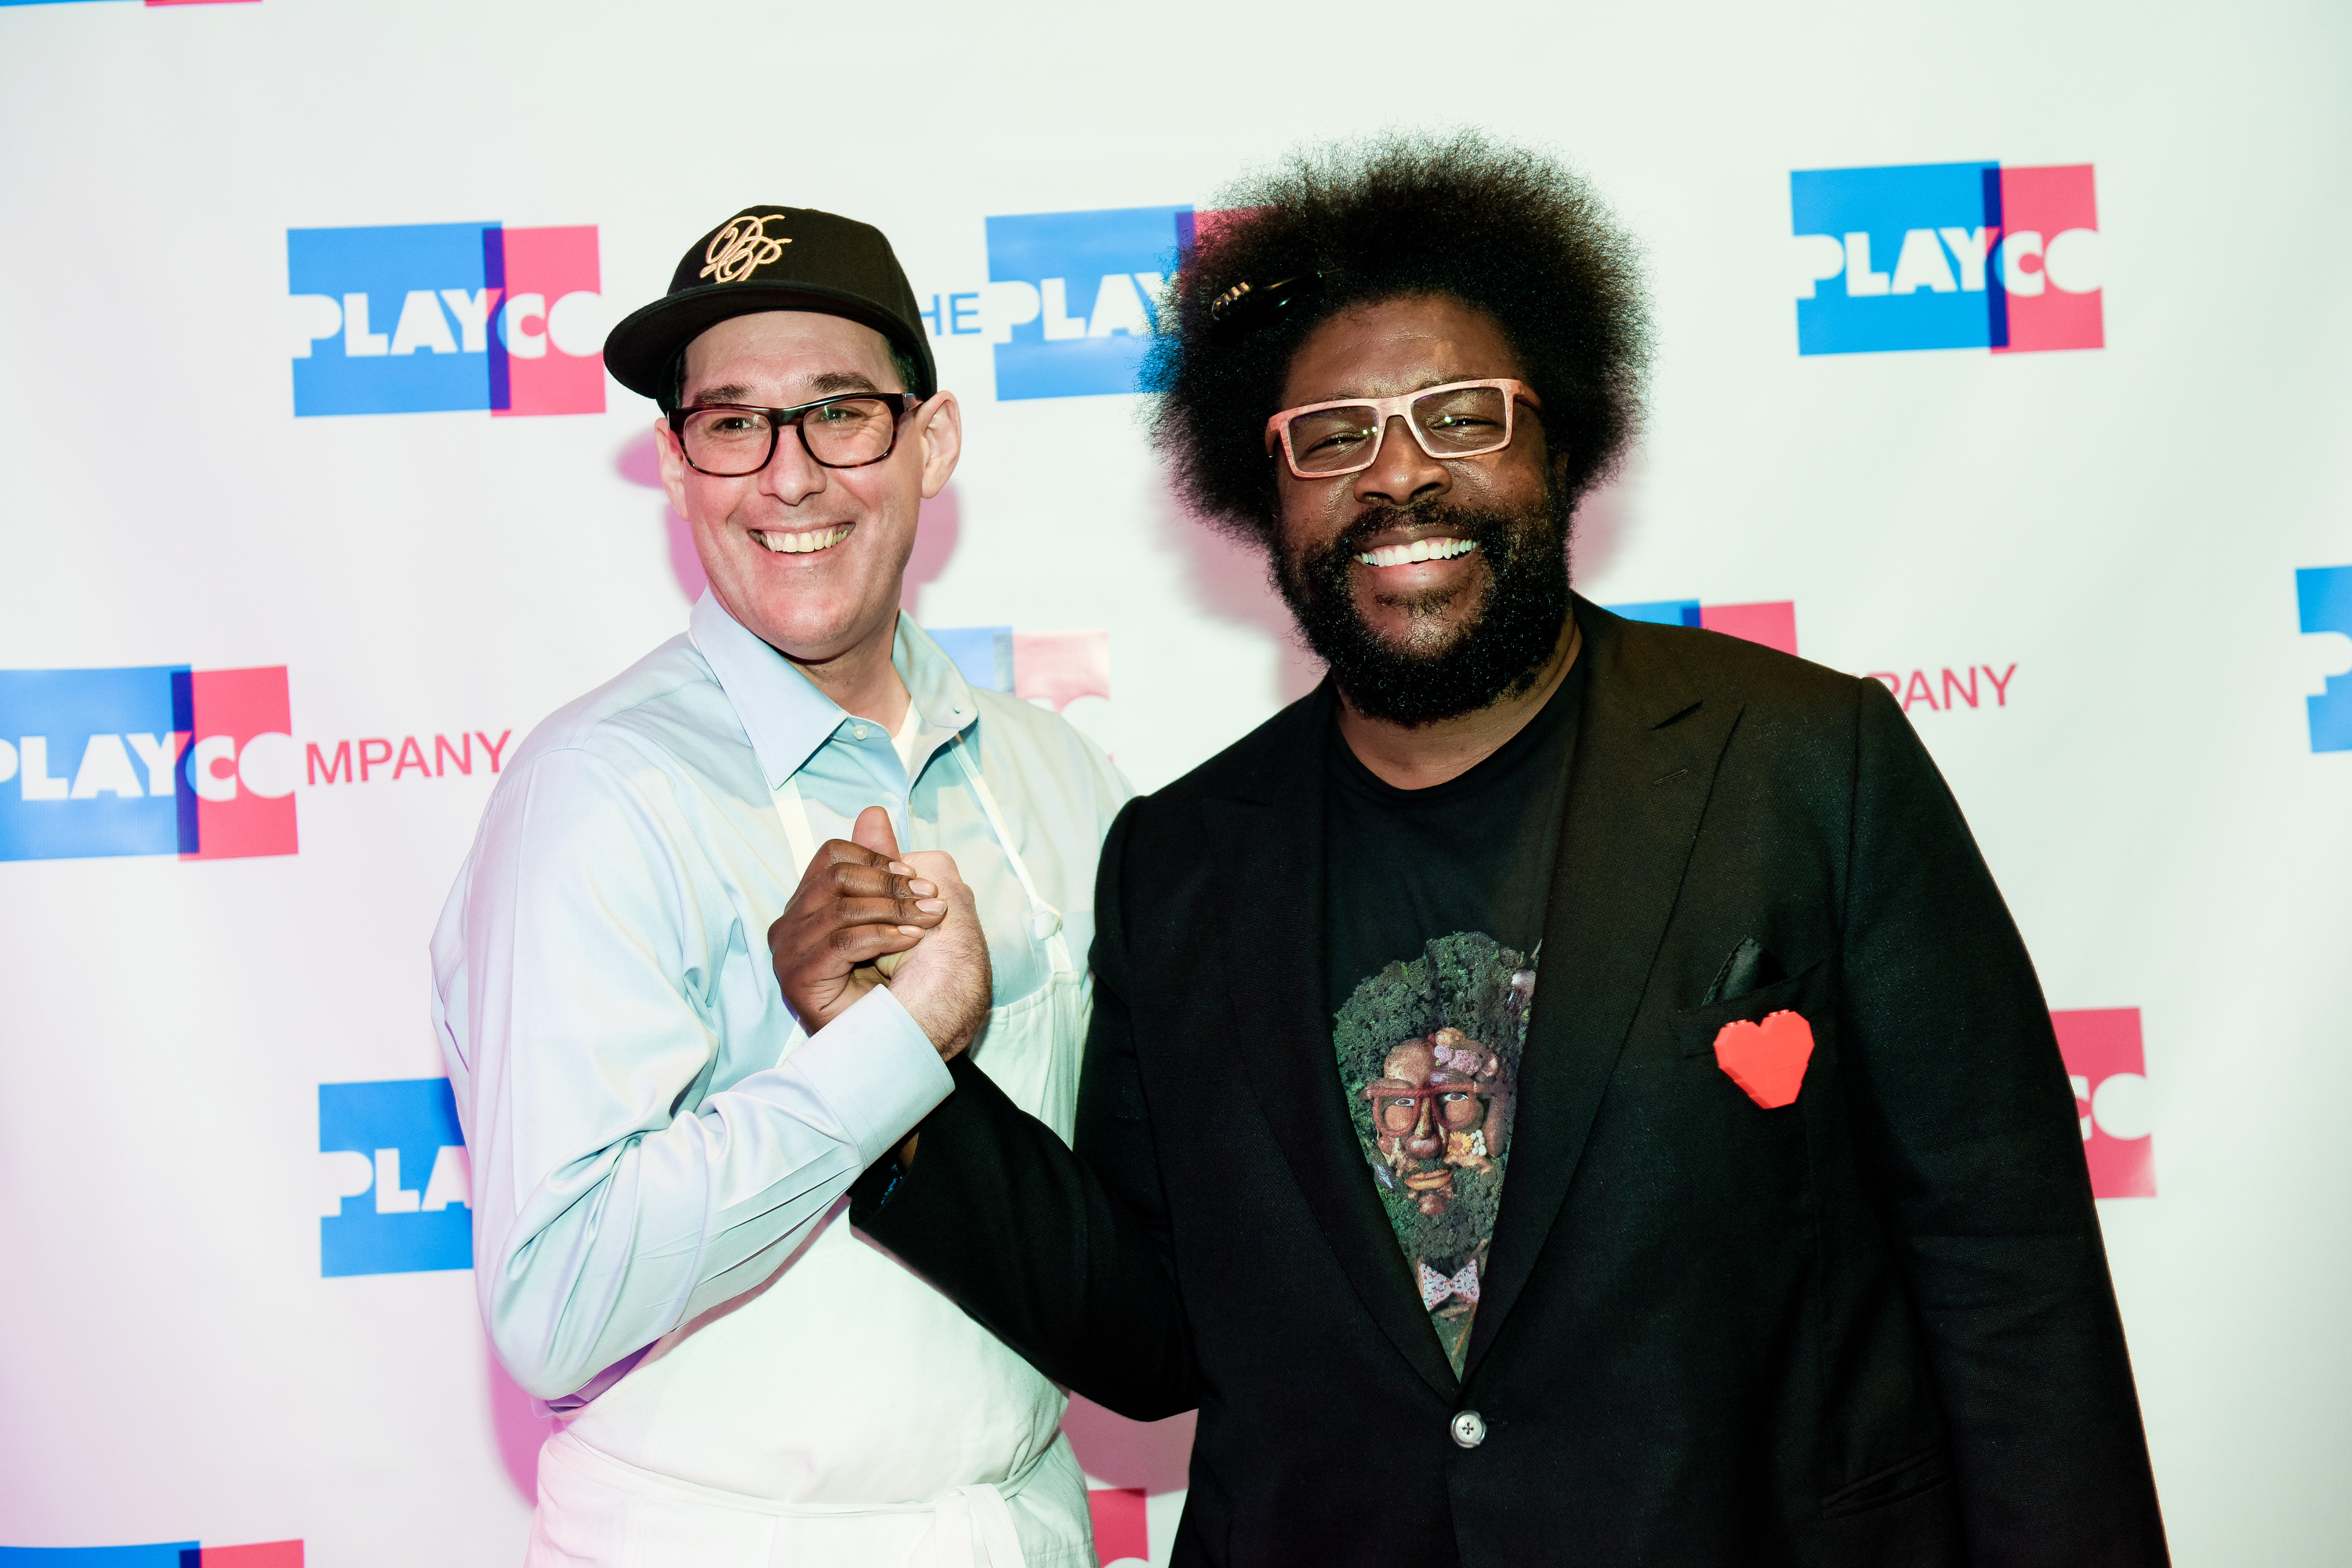 Questlove greets board members of The Play Company at their 15th Annual Gala at ESpace in New York City April 11, 2016. Photo: David Handschuh